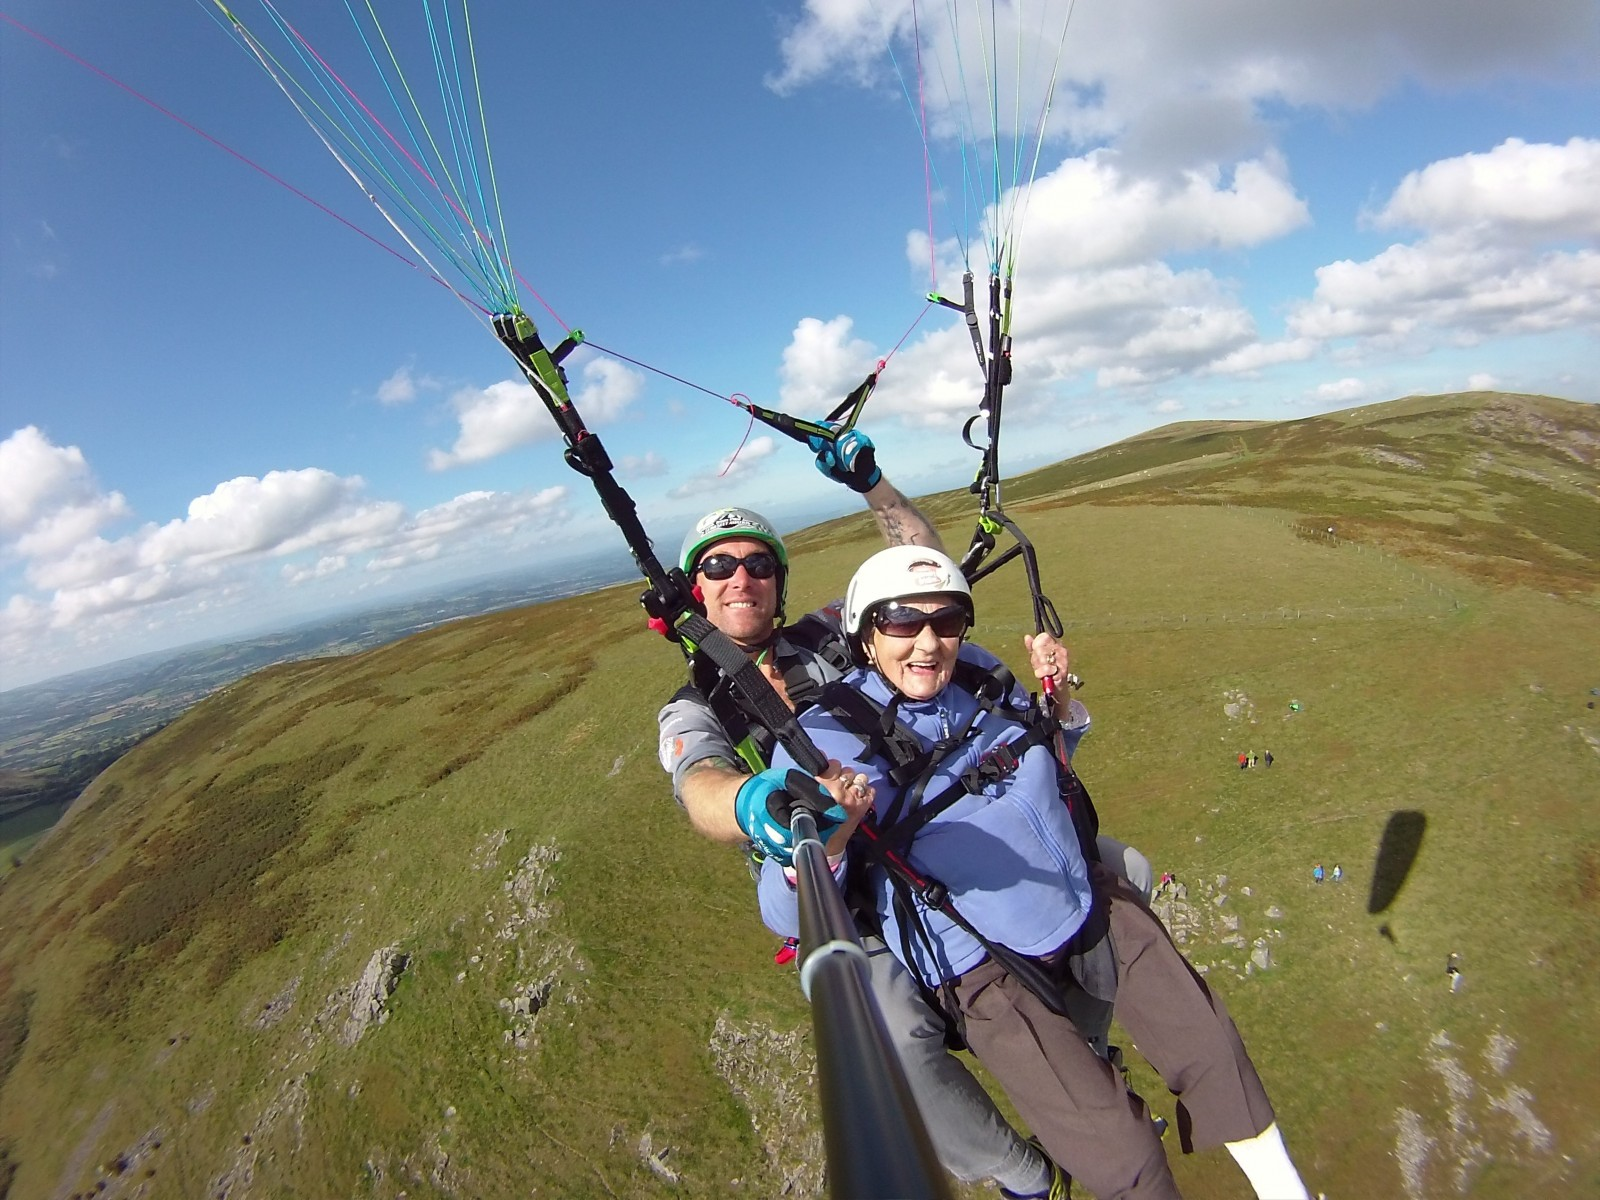 Fearless 90-year-old jumps out of a plane to fulfil lifelong ambition!